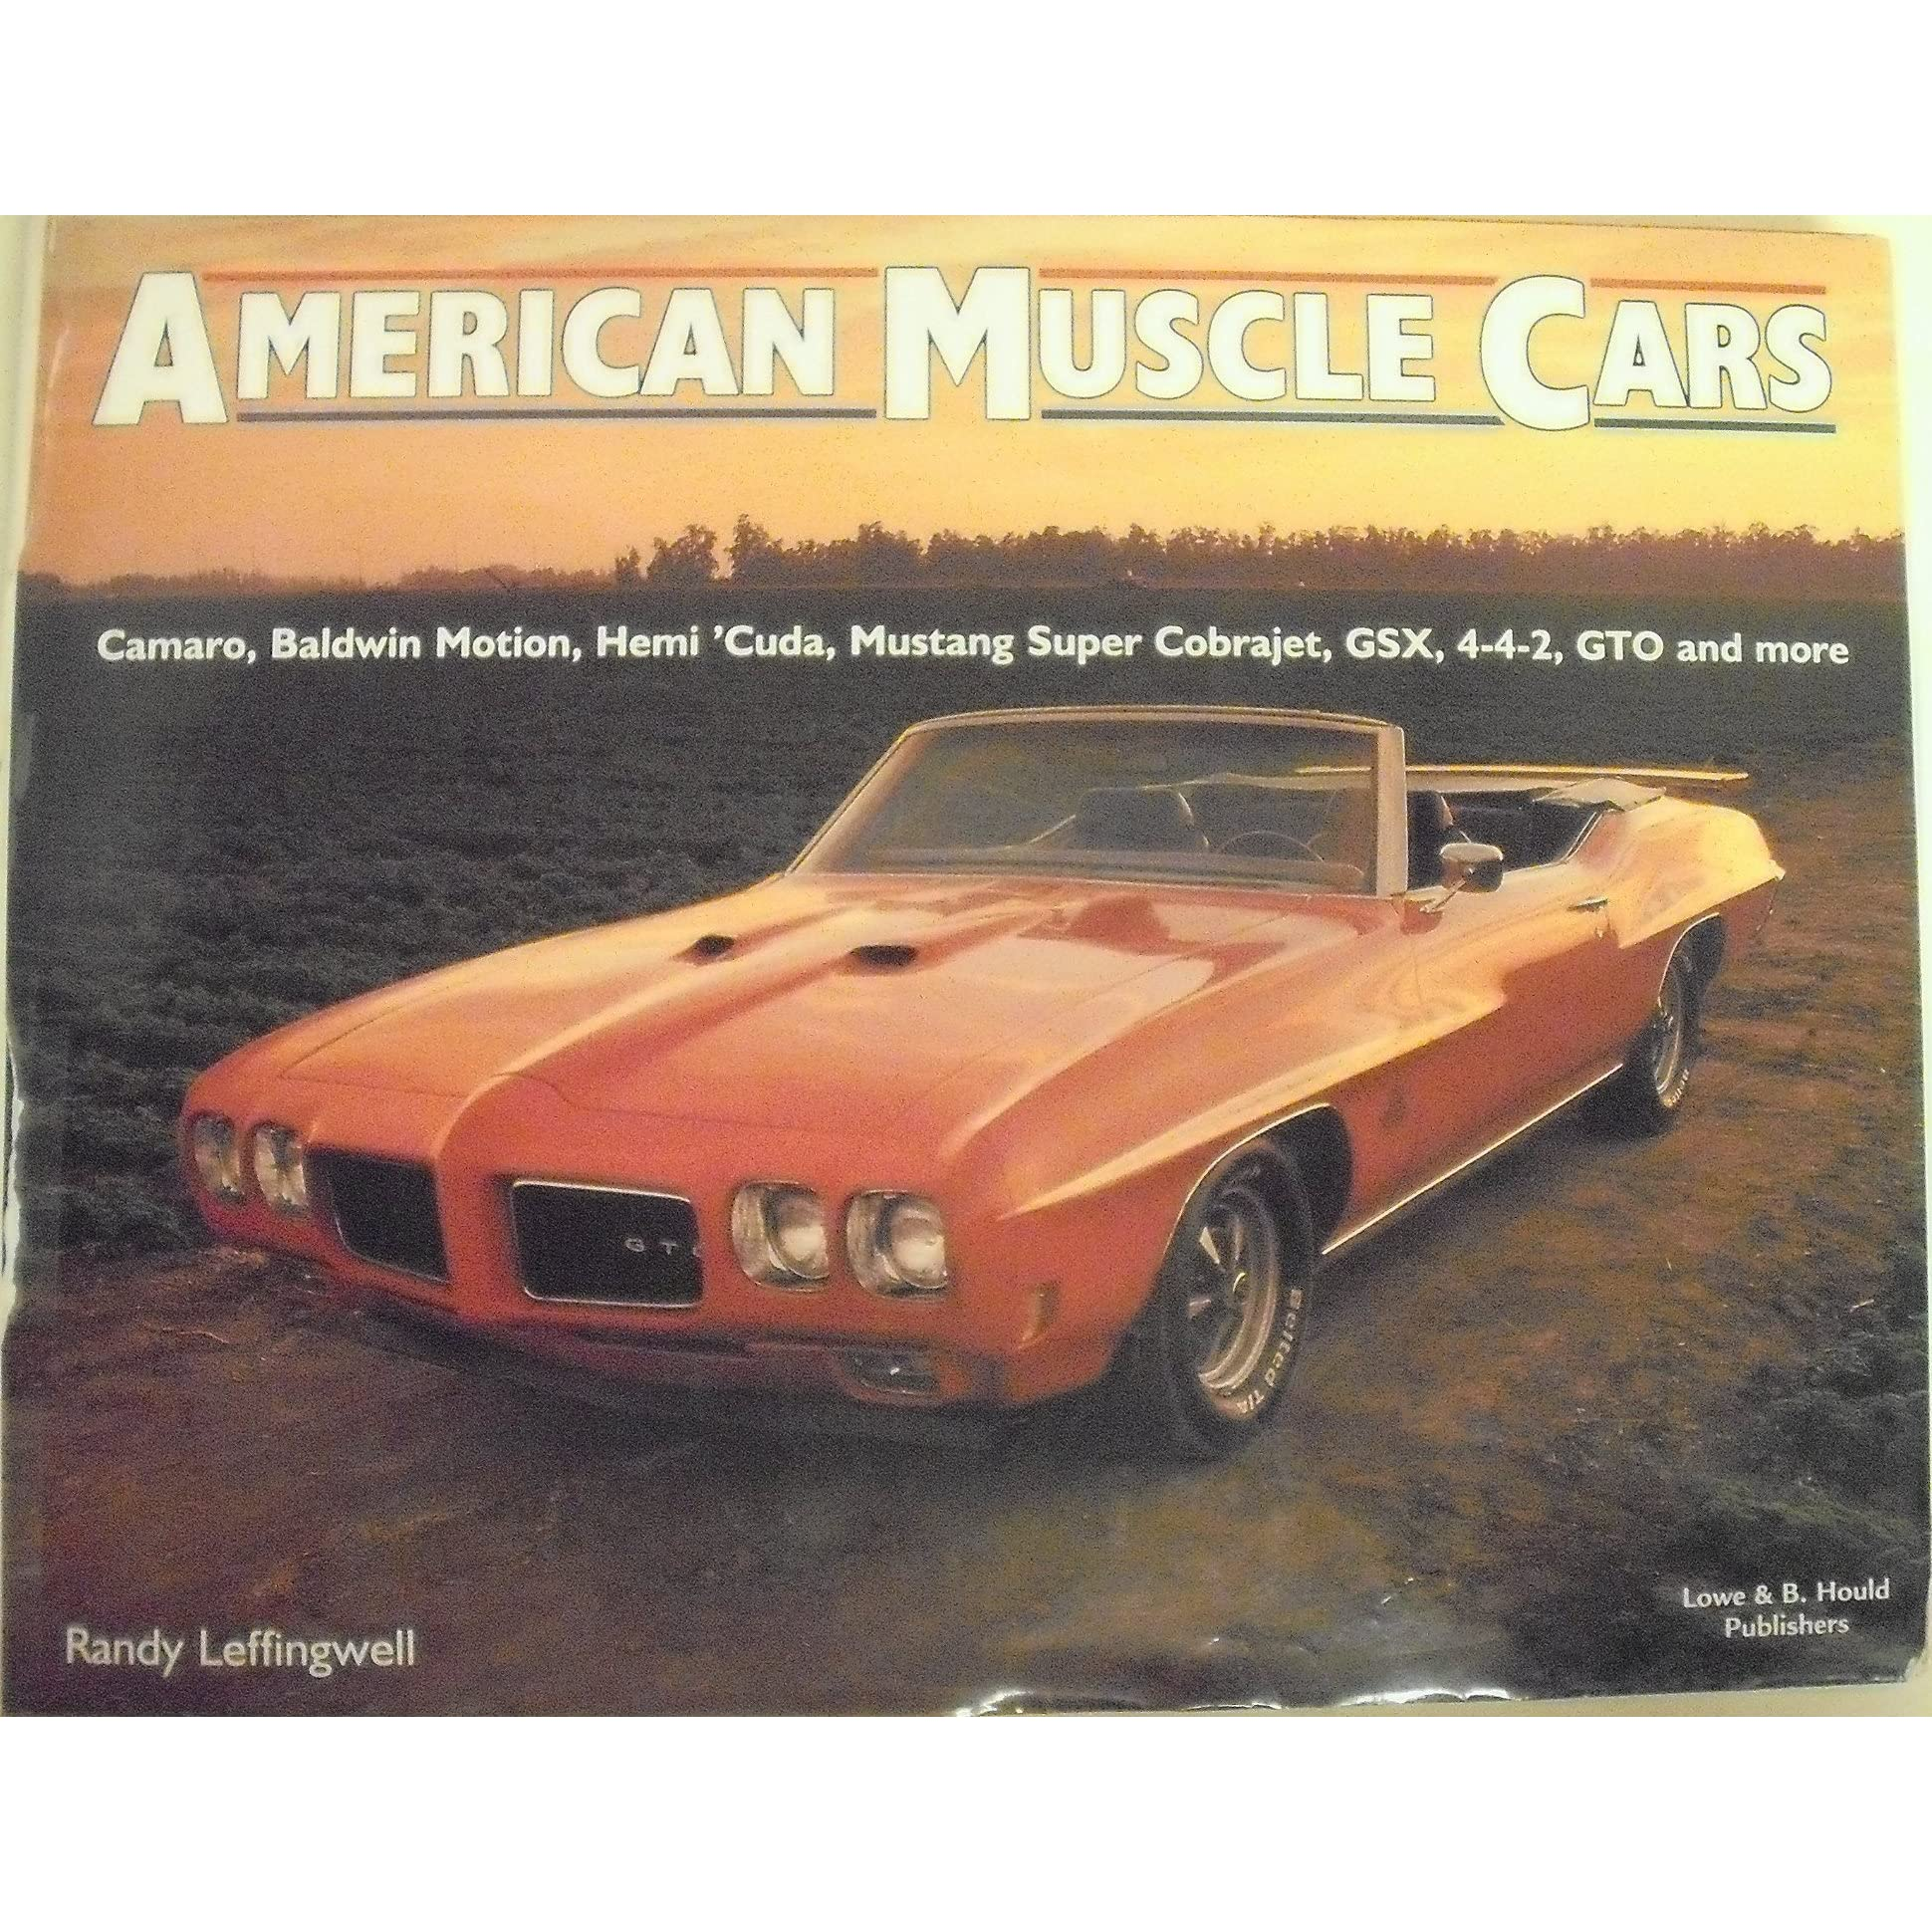 American Muscle Cars by Randy Leffingwell